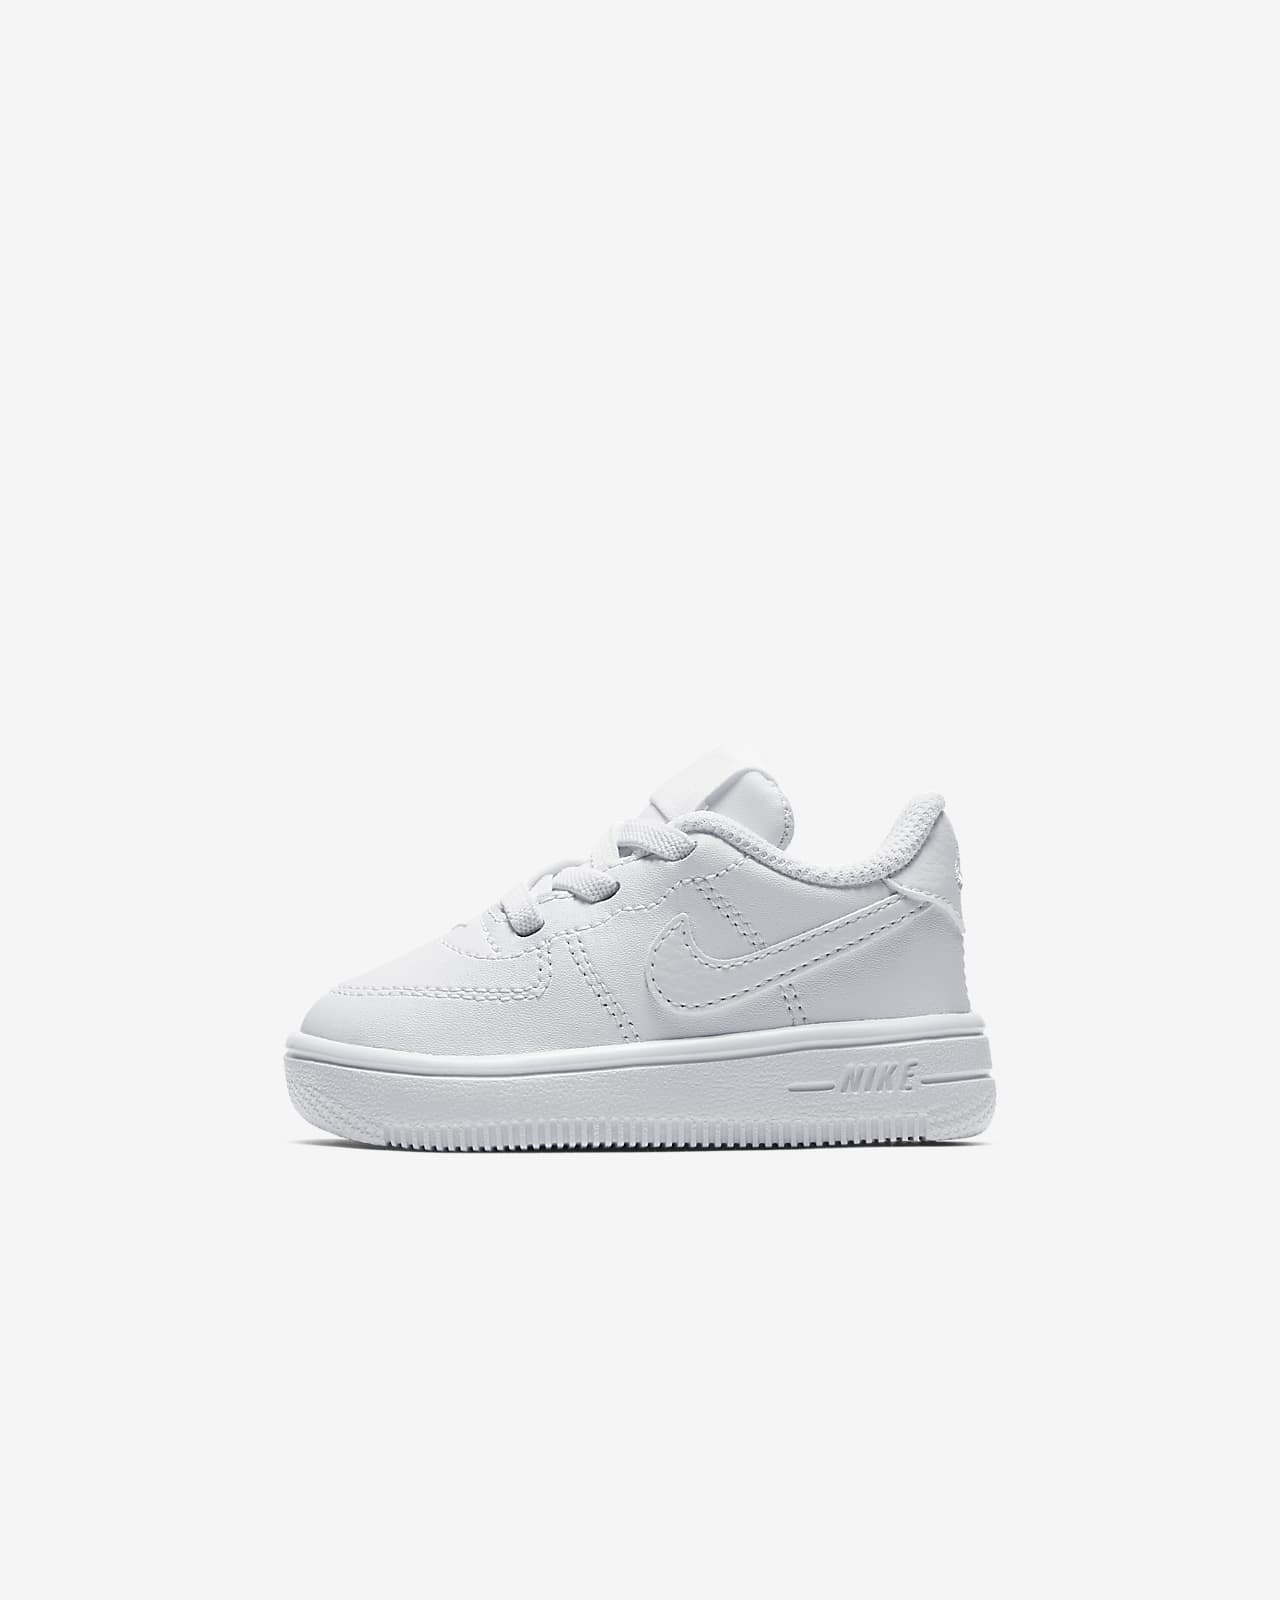 Nike Force 1 '18 Infant/Toddler Shoe